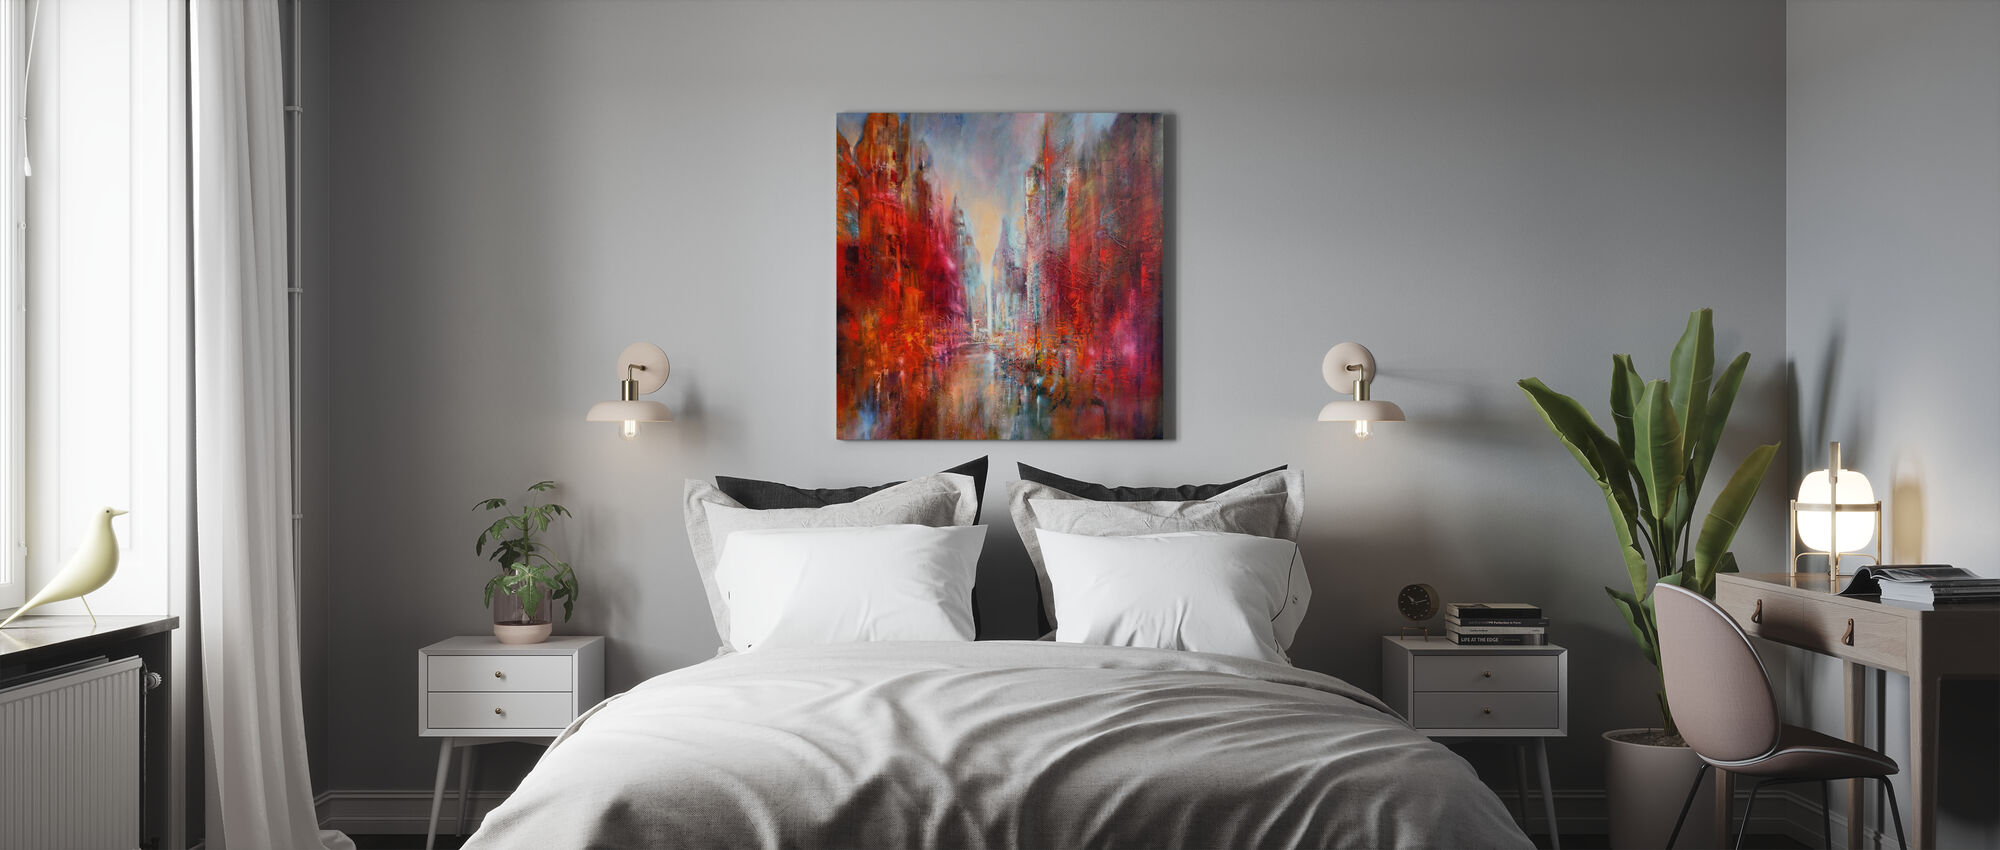 Cathedral City I - Canvas print - Bedroom